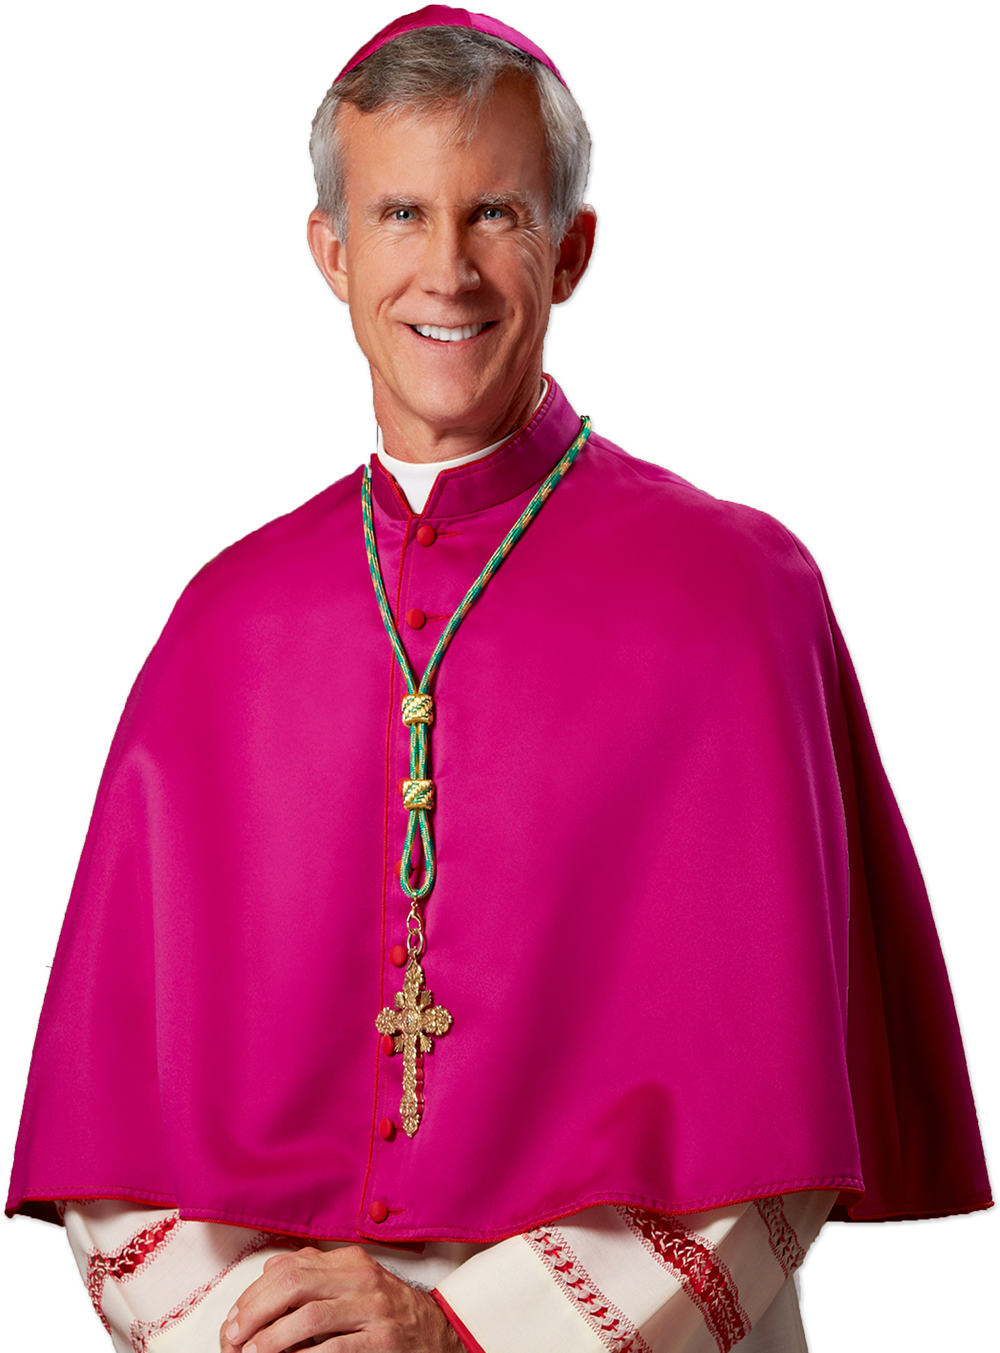 Bishop Joseph Strickland